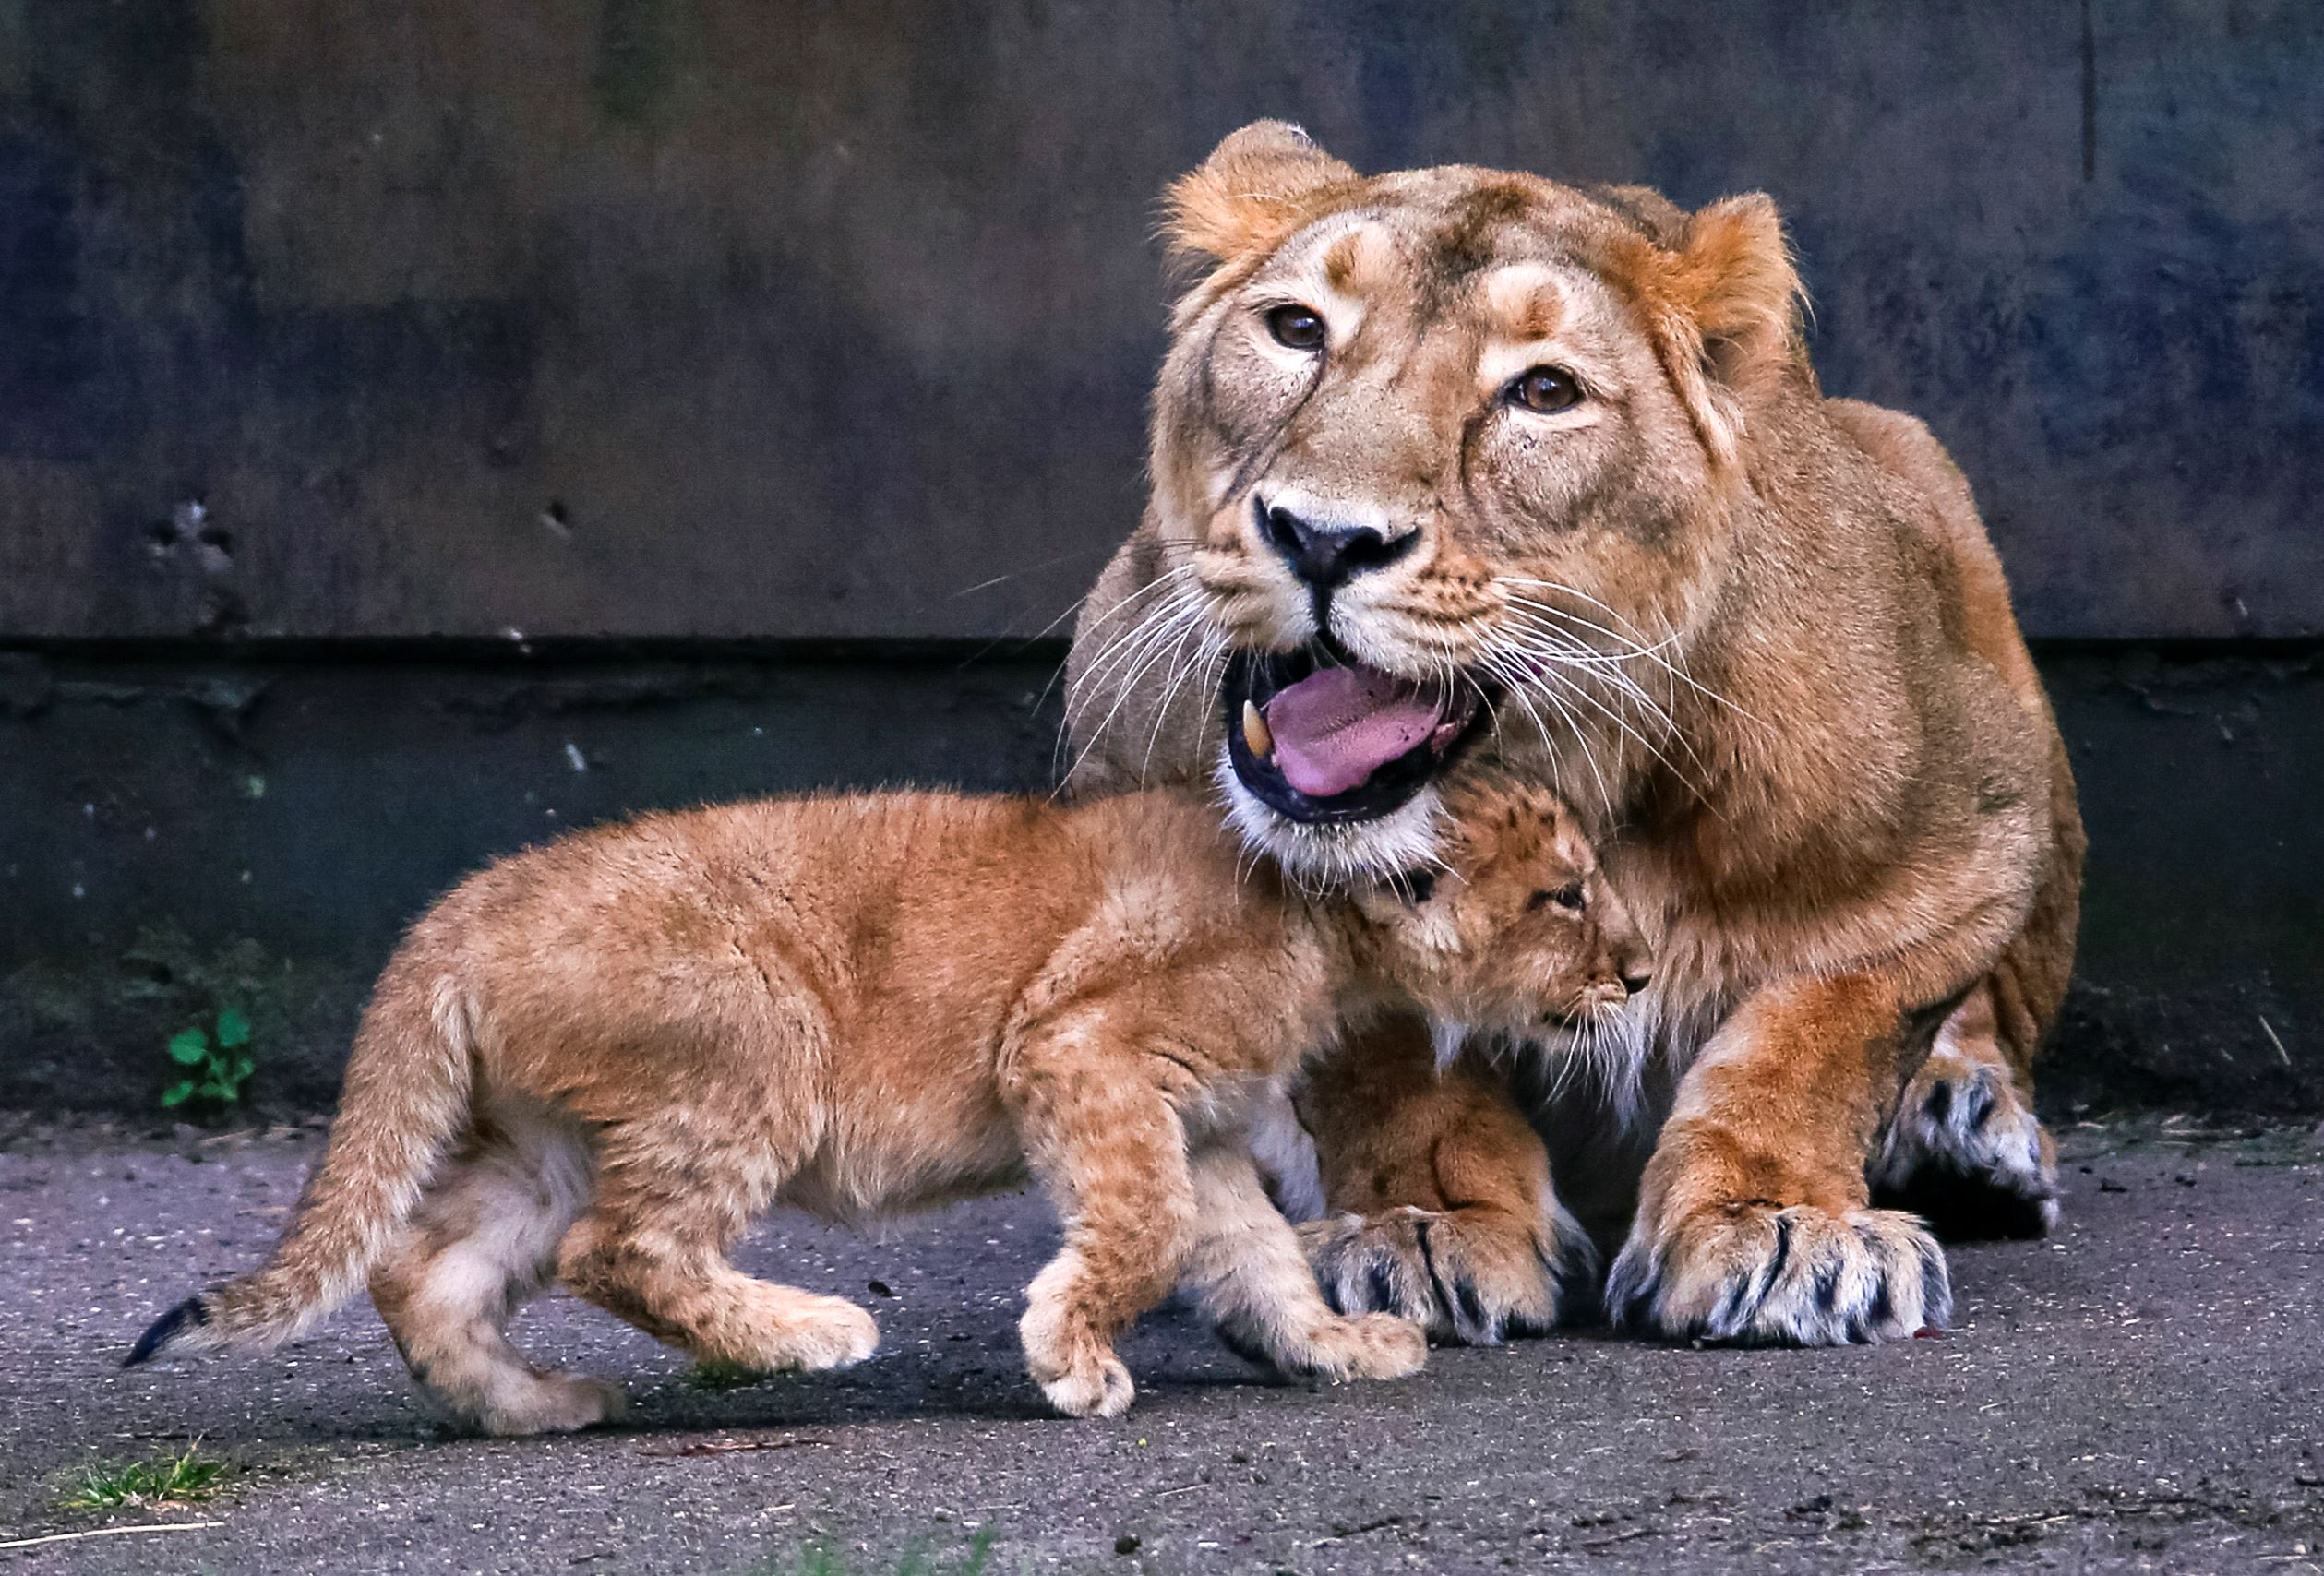 Слайд 47 из 67: An Asian lion cubs, born on January 25, 2016, walks next to his mother Lorena while being presented to the public at the Planckendael Park in Mechelen, Belgium March 30, 2016.